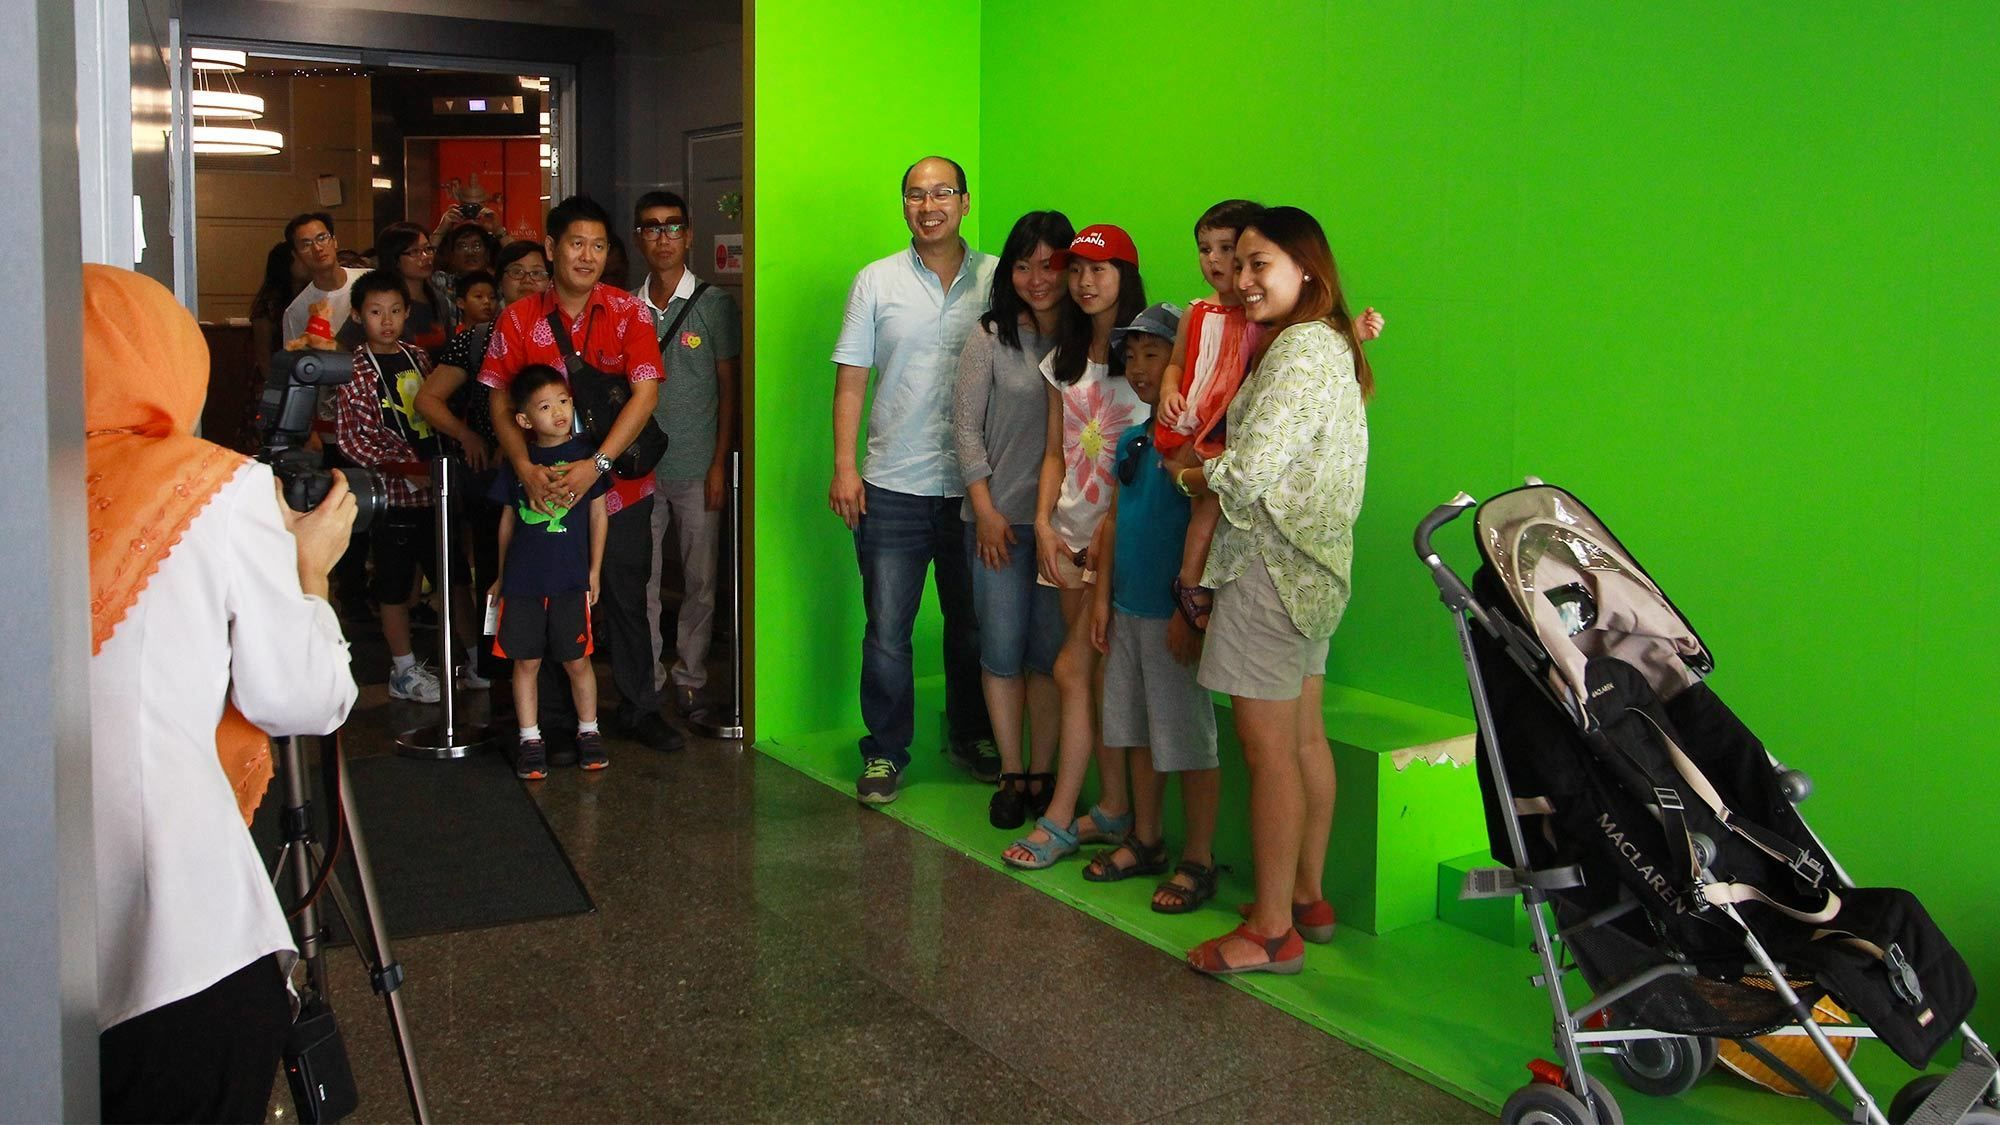 Family stands in front of green screen for photo at KL Tower in Kuala Lumpur